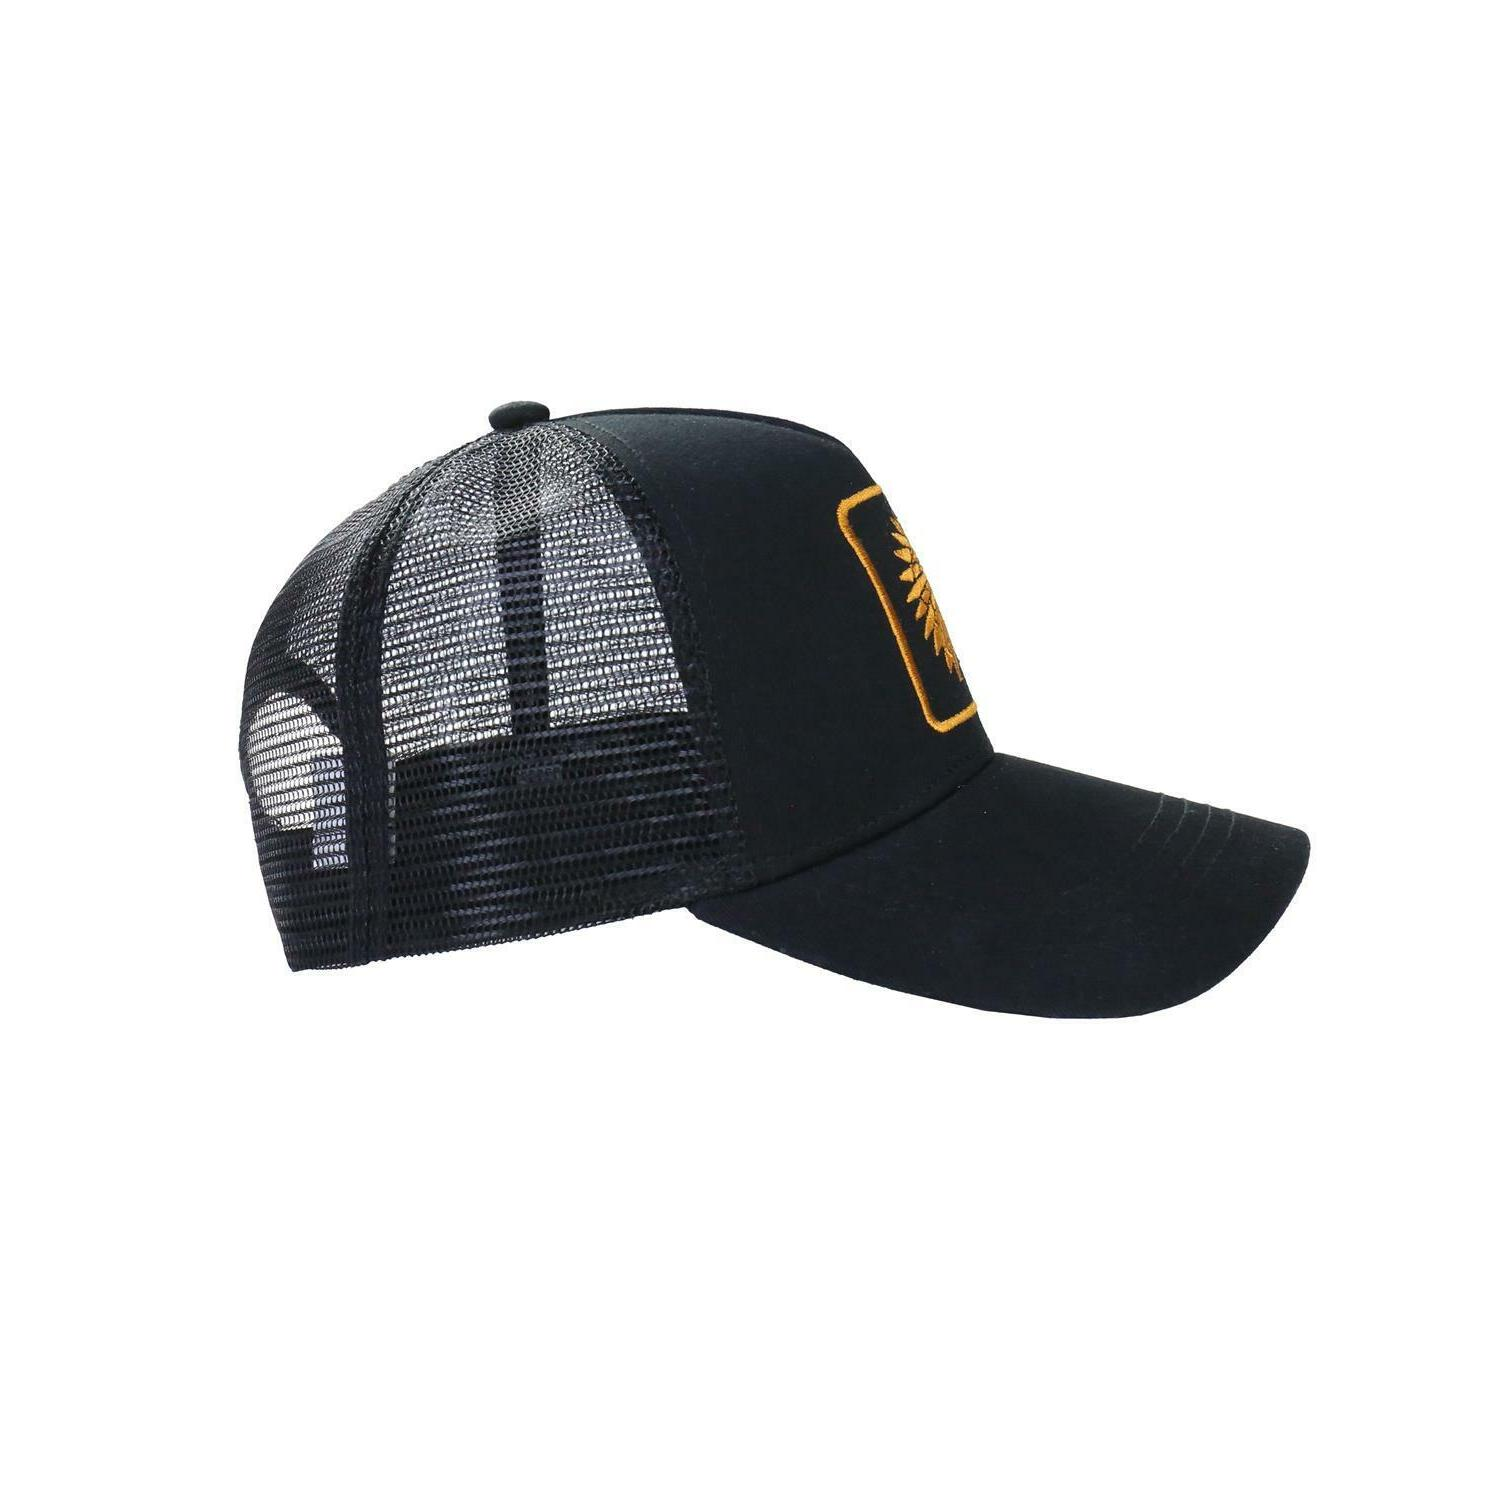 Men's Snapback Adjustable Mesh Sports Baseball